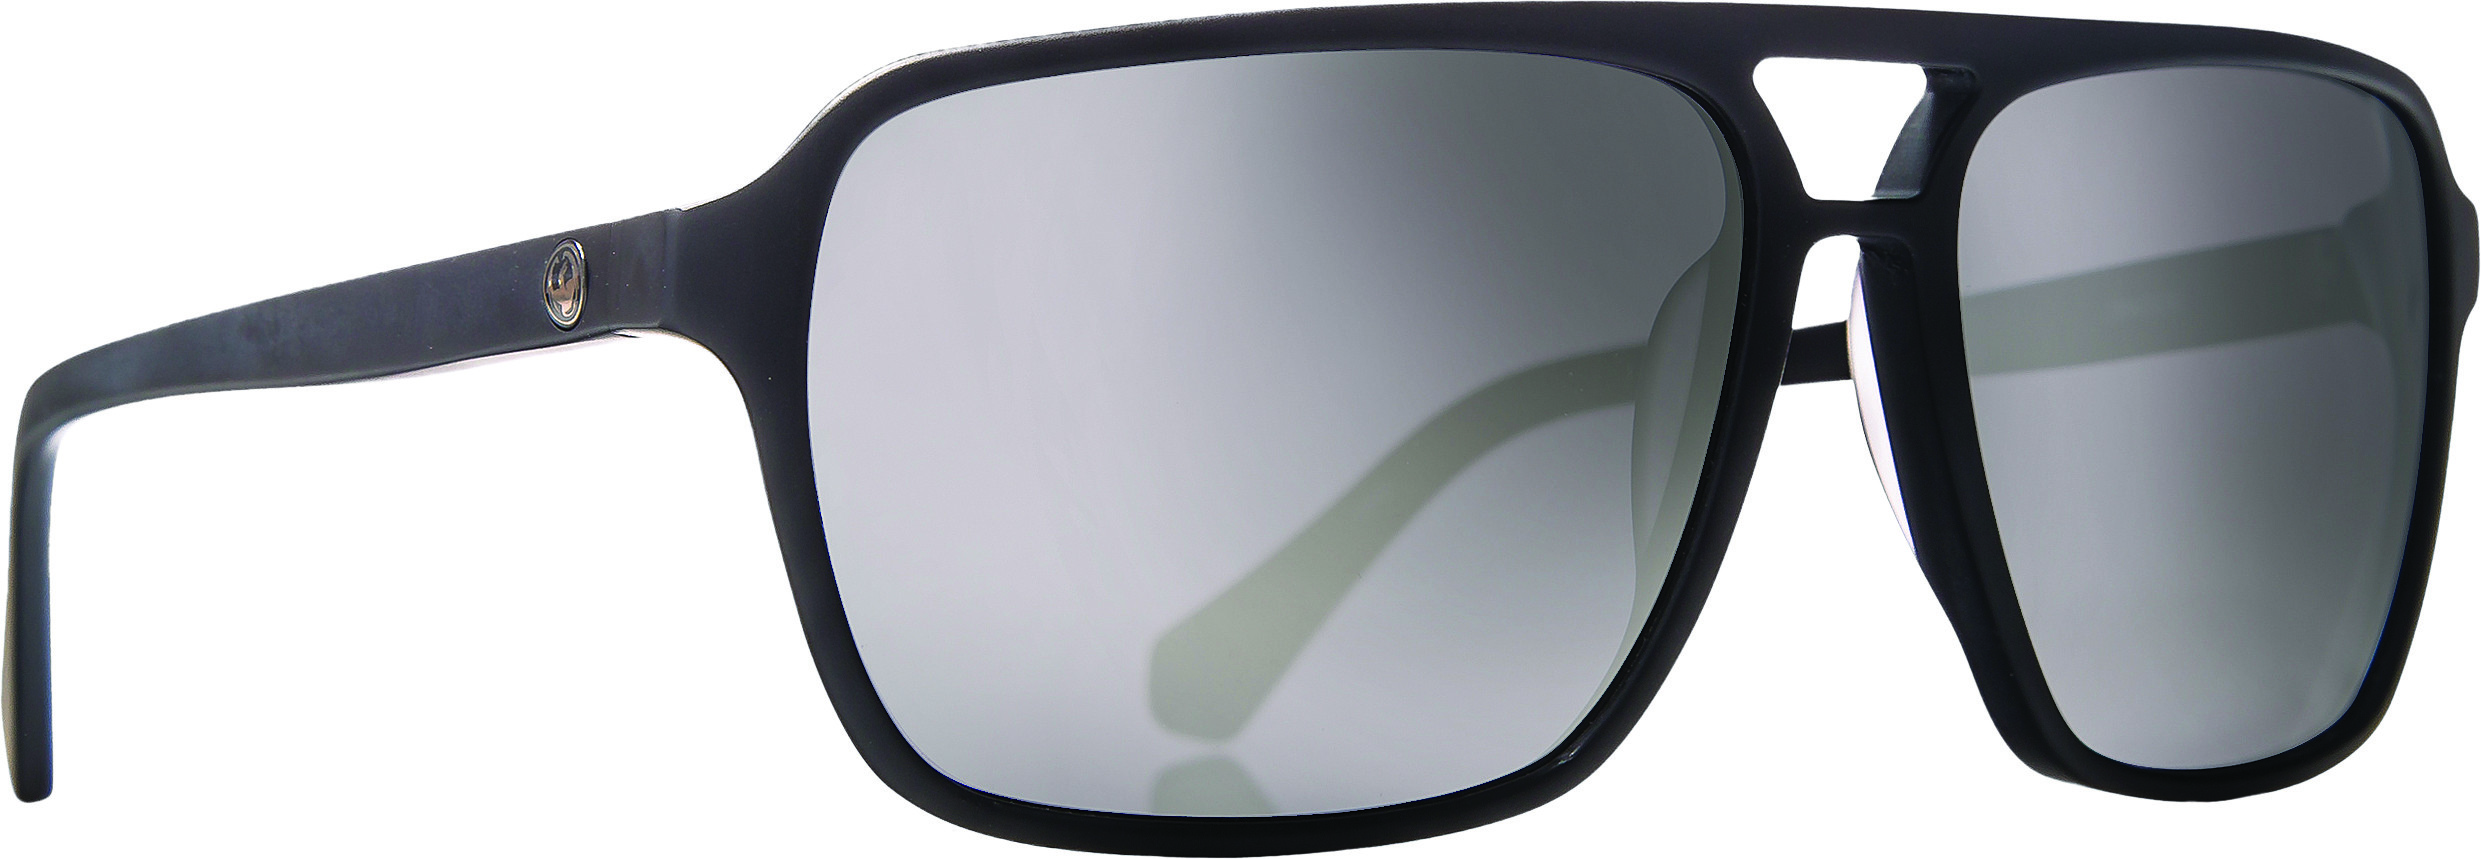 Passport Sunglasses Matte Black W/Silver Ion Lens